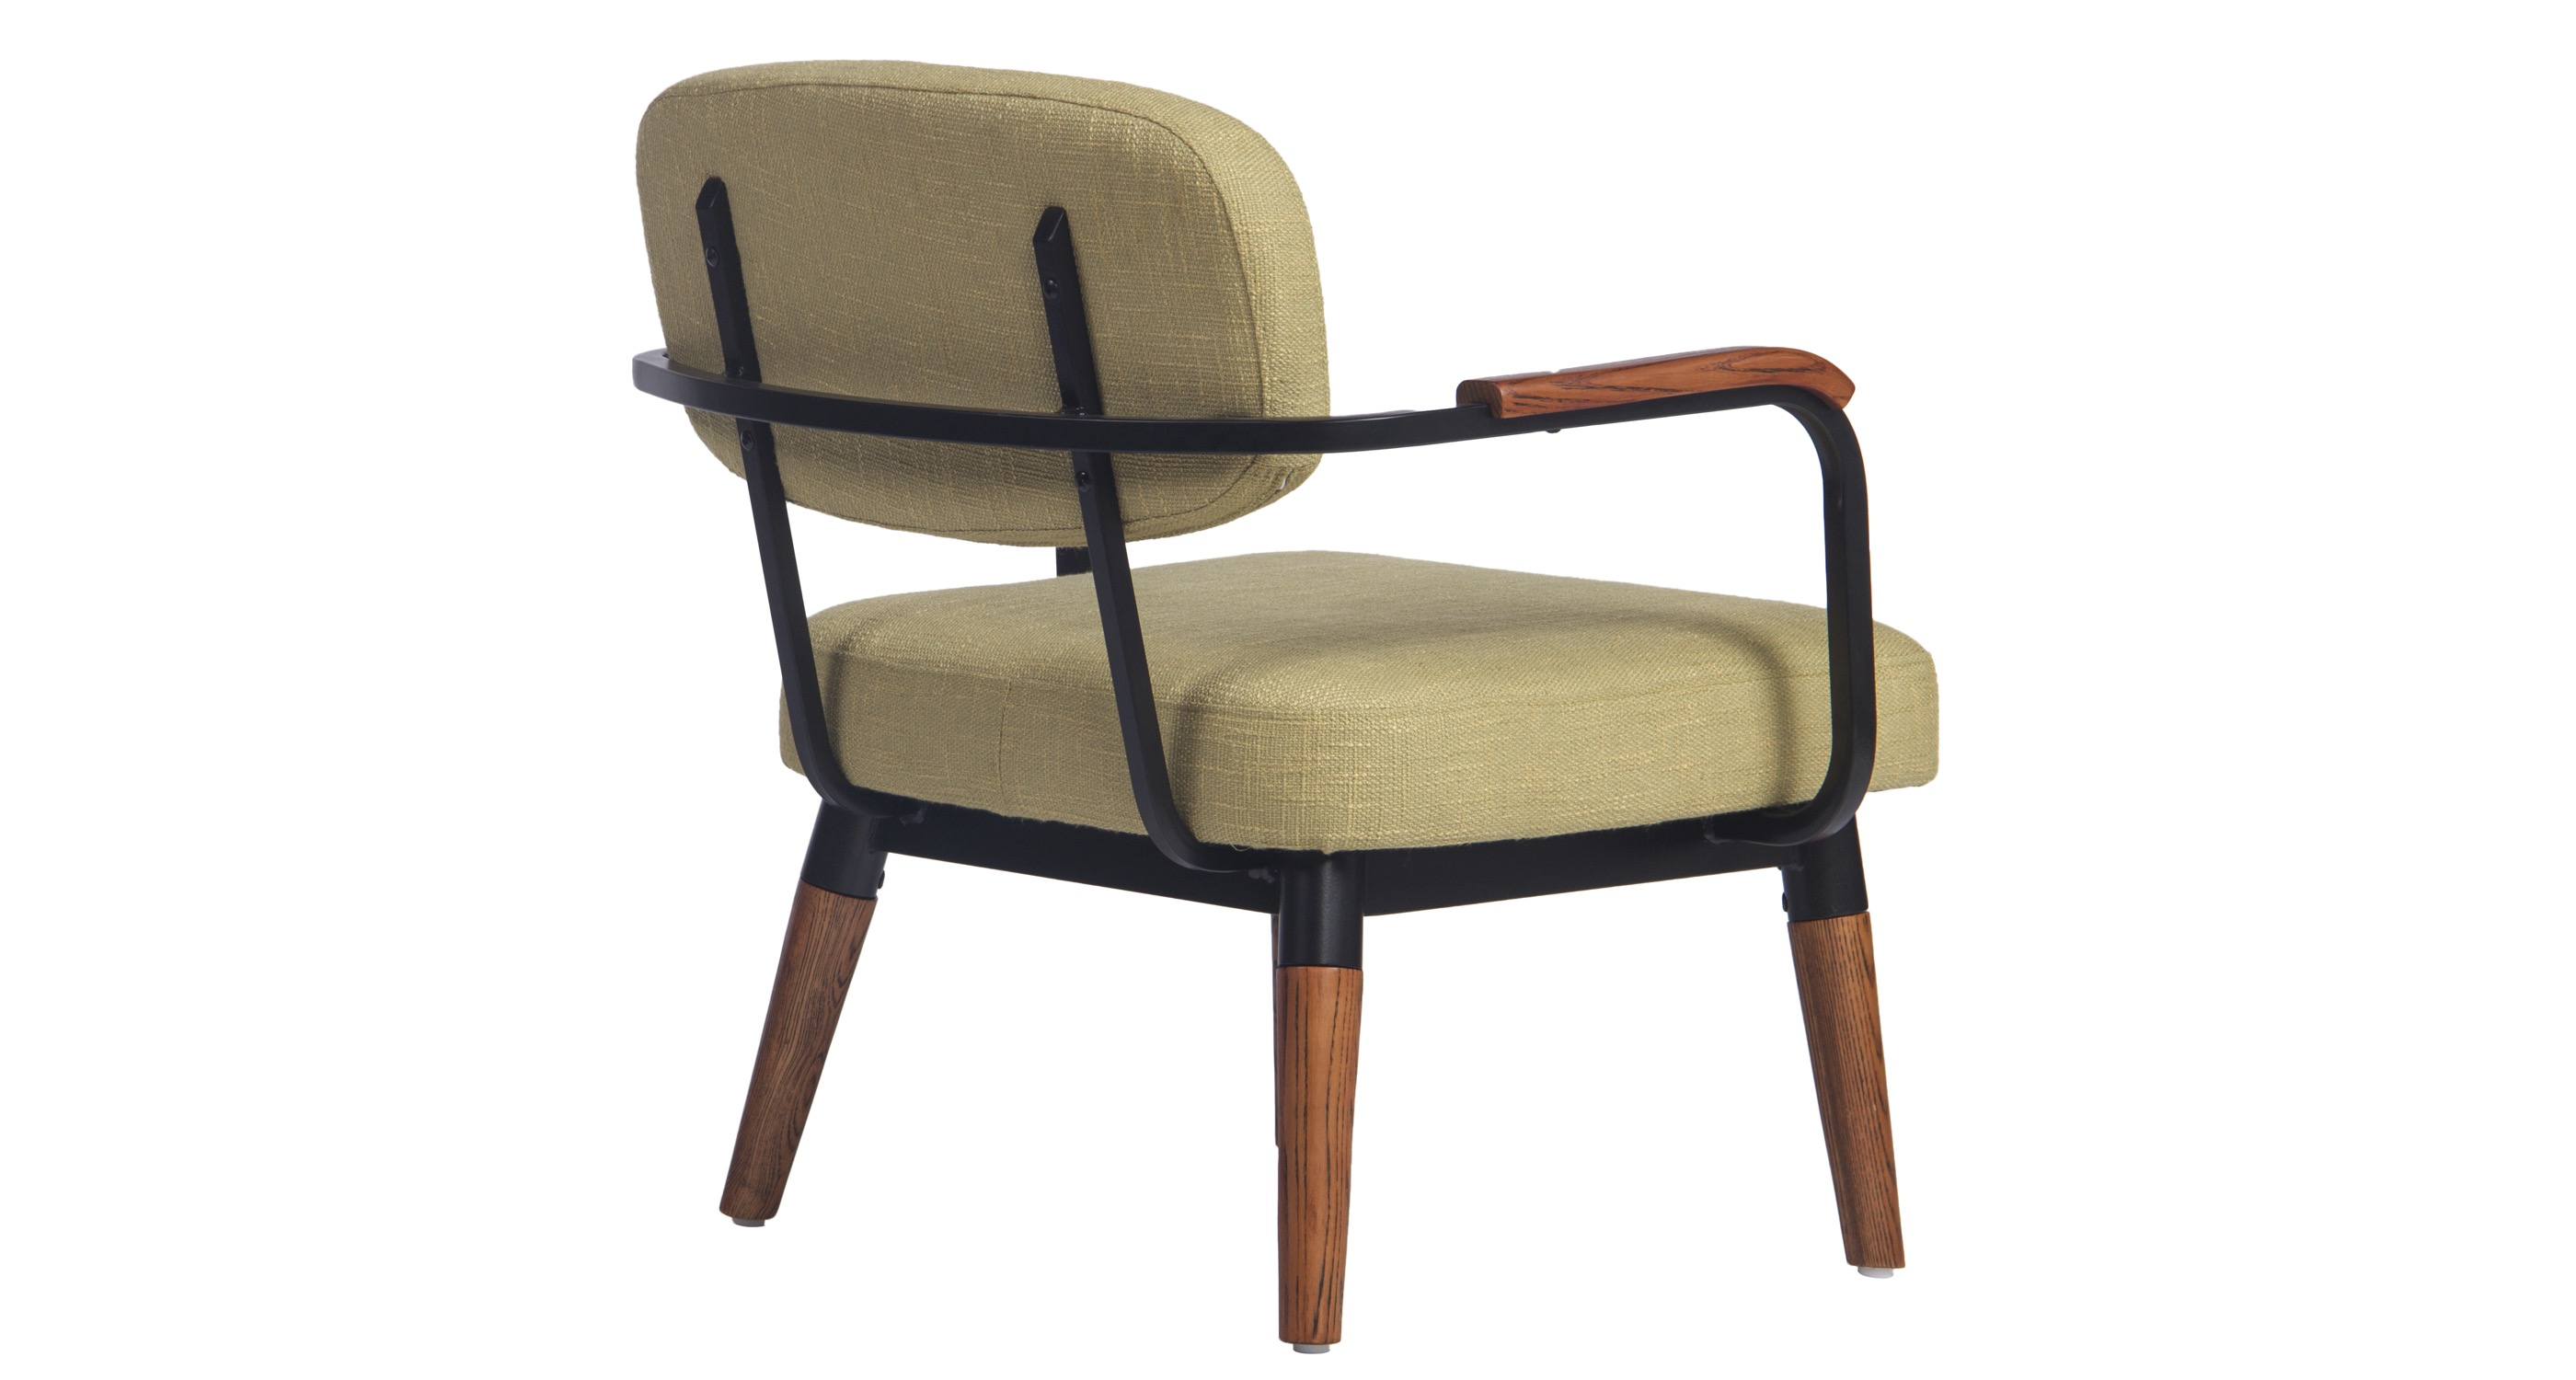 Modern Chairs & Furniture